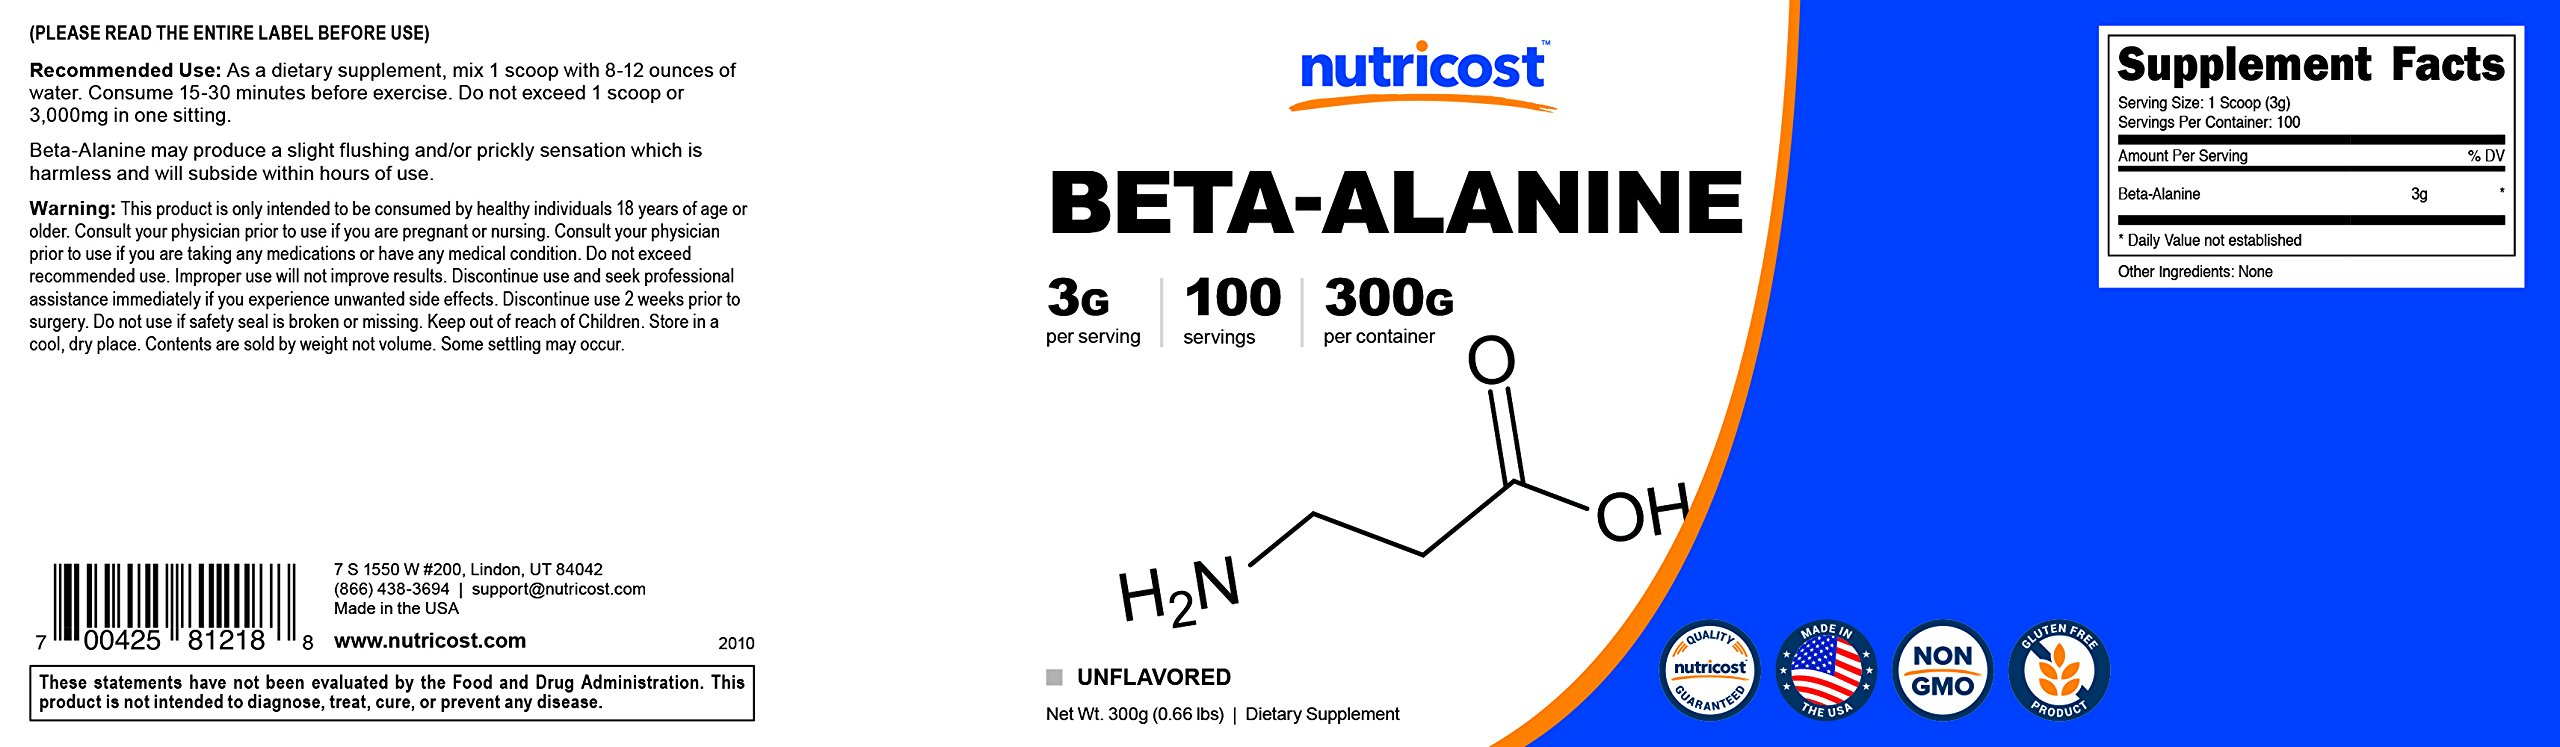 Nutricost Beta Alanine Powder 300 Grams - 3 Grams Per Serving by Nutricost (Image #6)